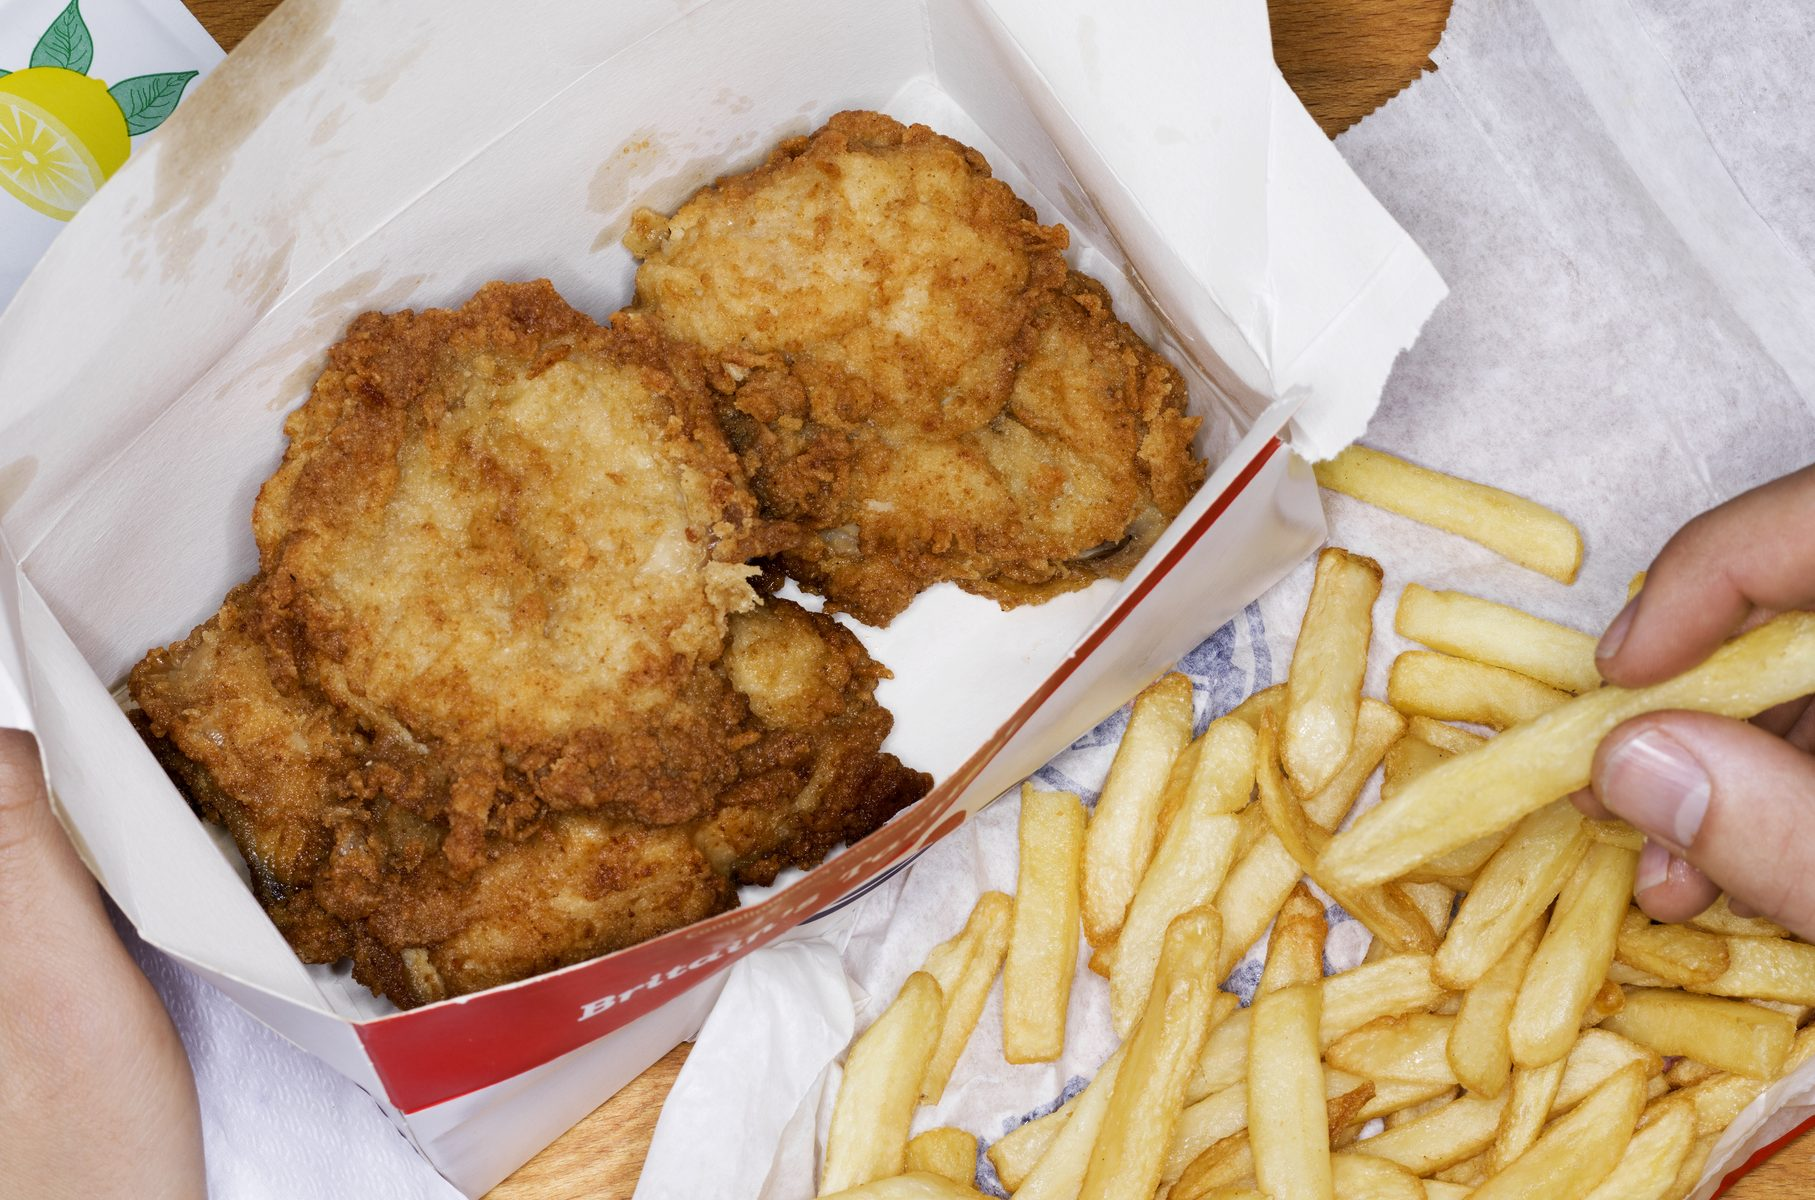 Fried chicken shops stitch a tear in society allowing teenagers like me to simply be ourselves